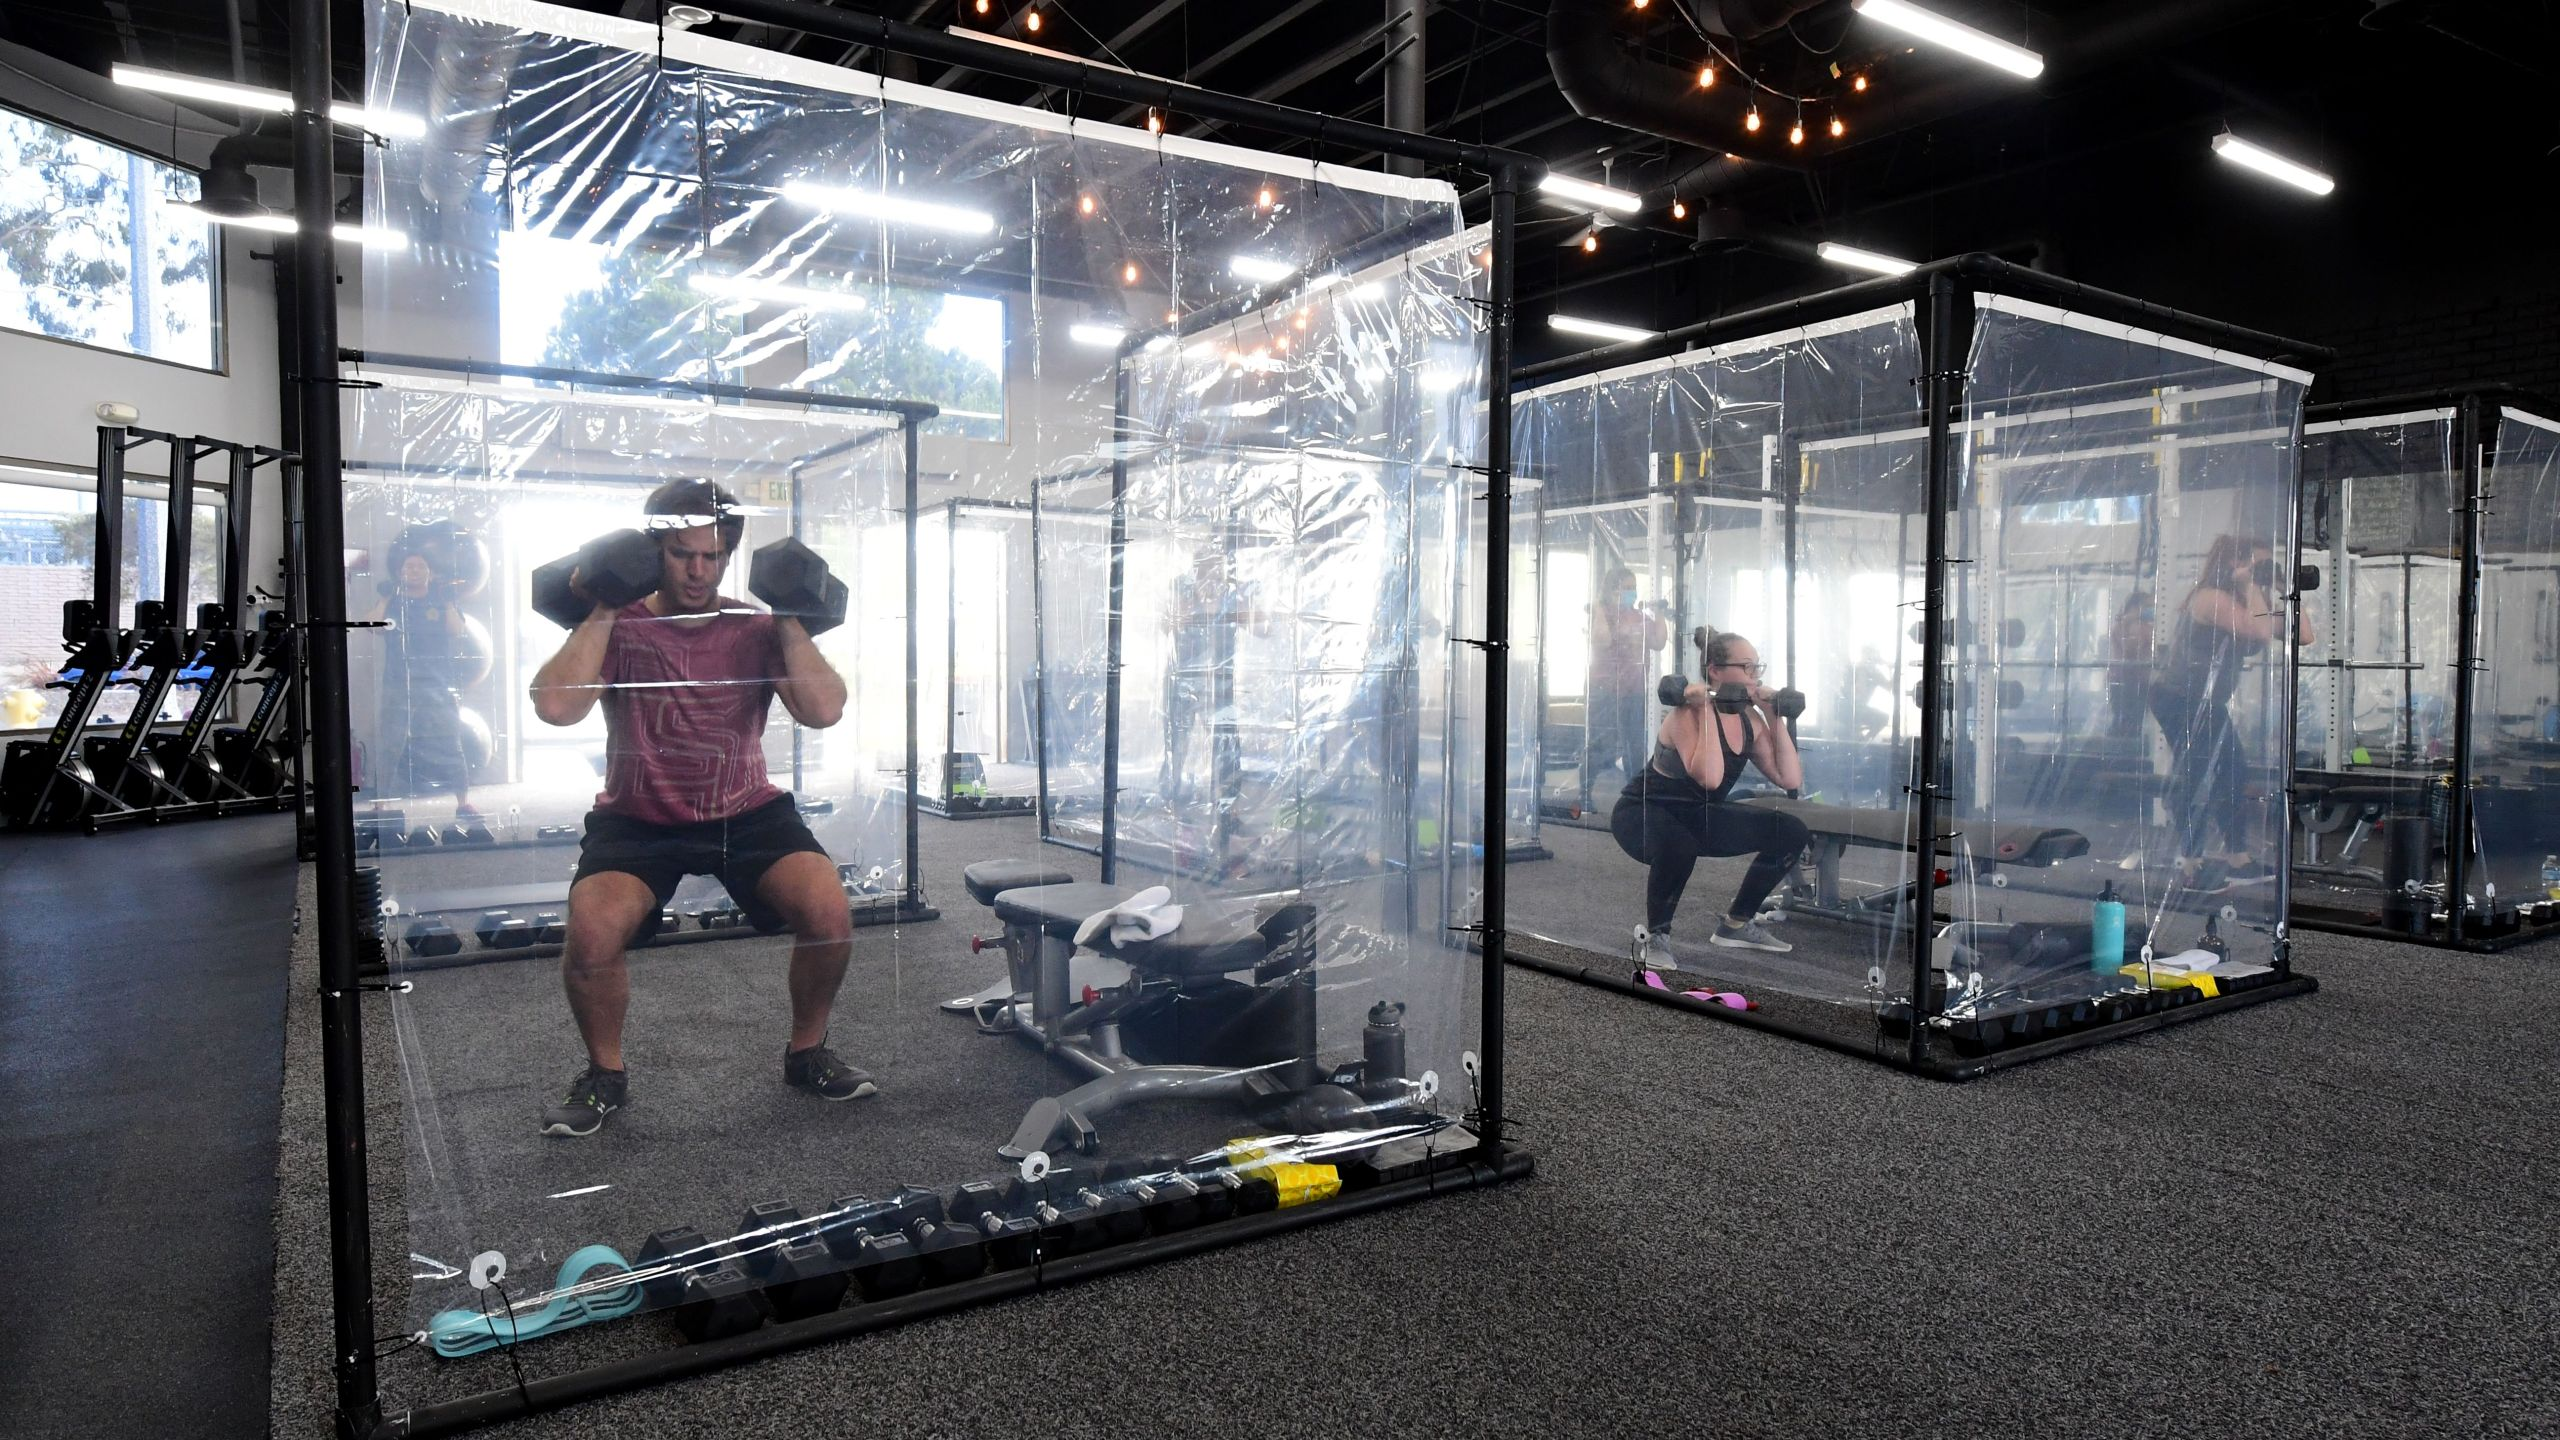 People exercise at Inspire South Bay Fitness behind plastic sheets in their workout pods on June 15, 2020, in Redondo Beach, California. (FREDERIC J. BROWN/AFP via Getty Images)